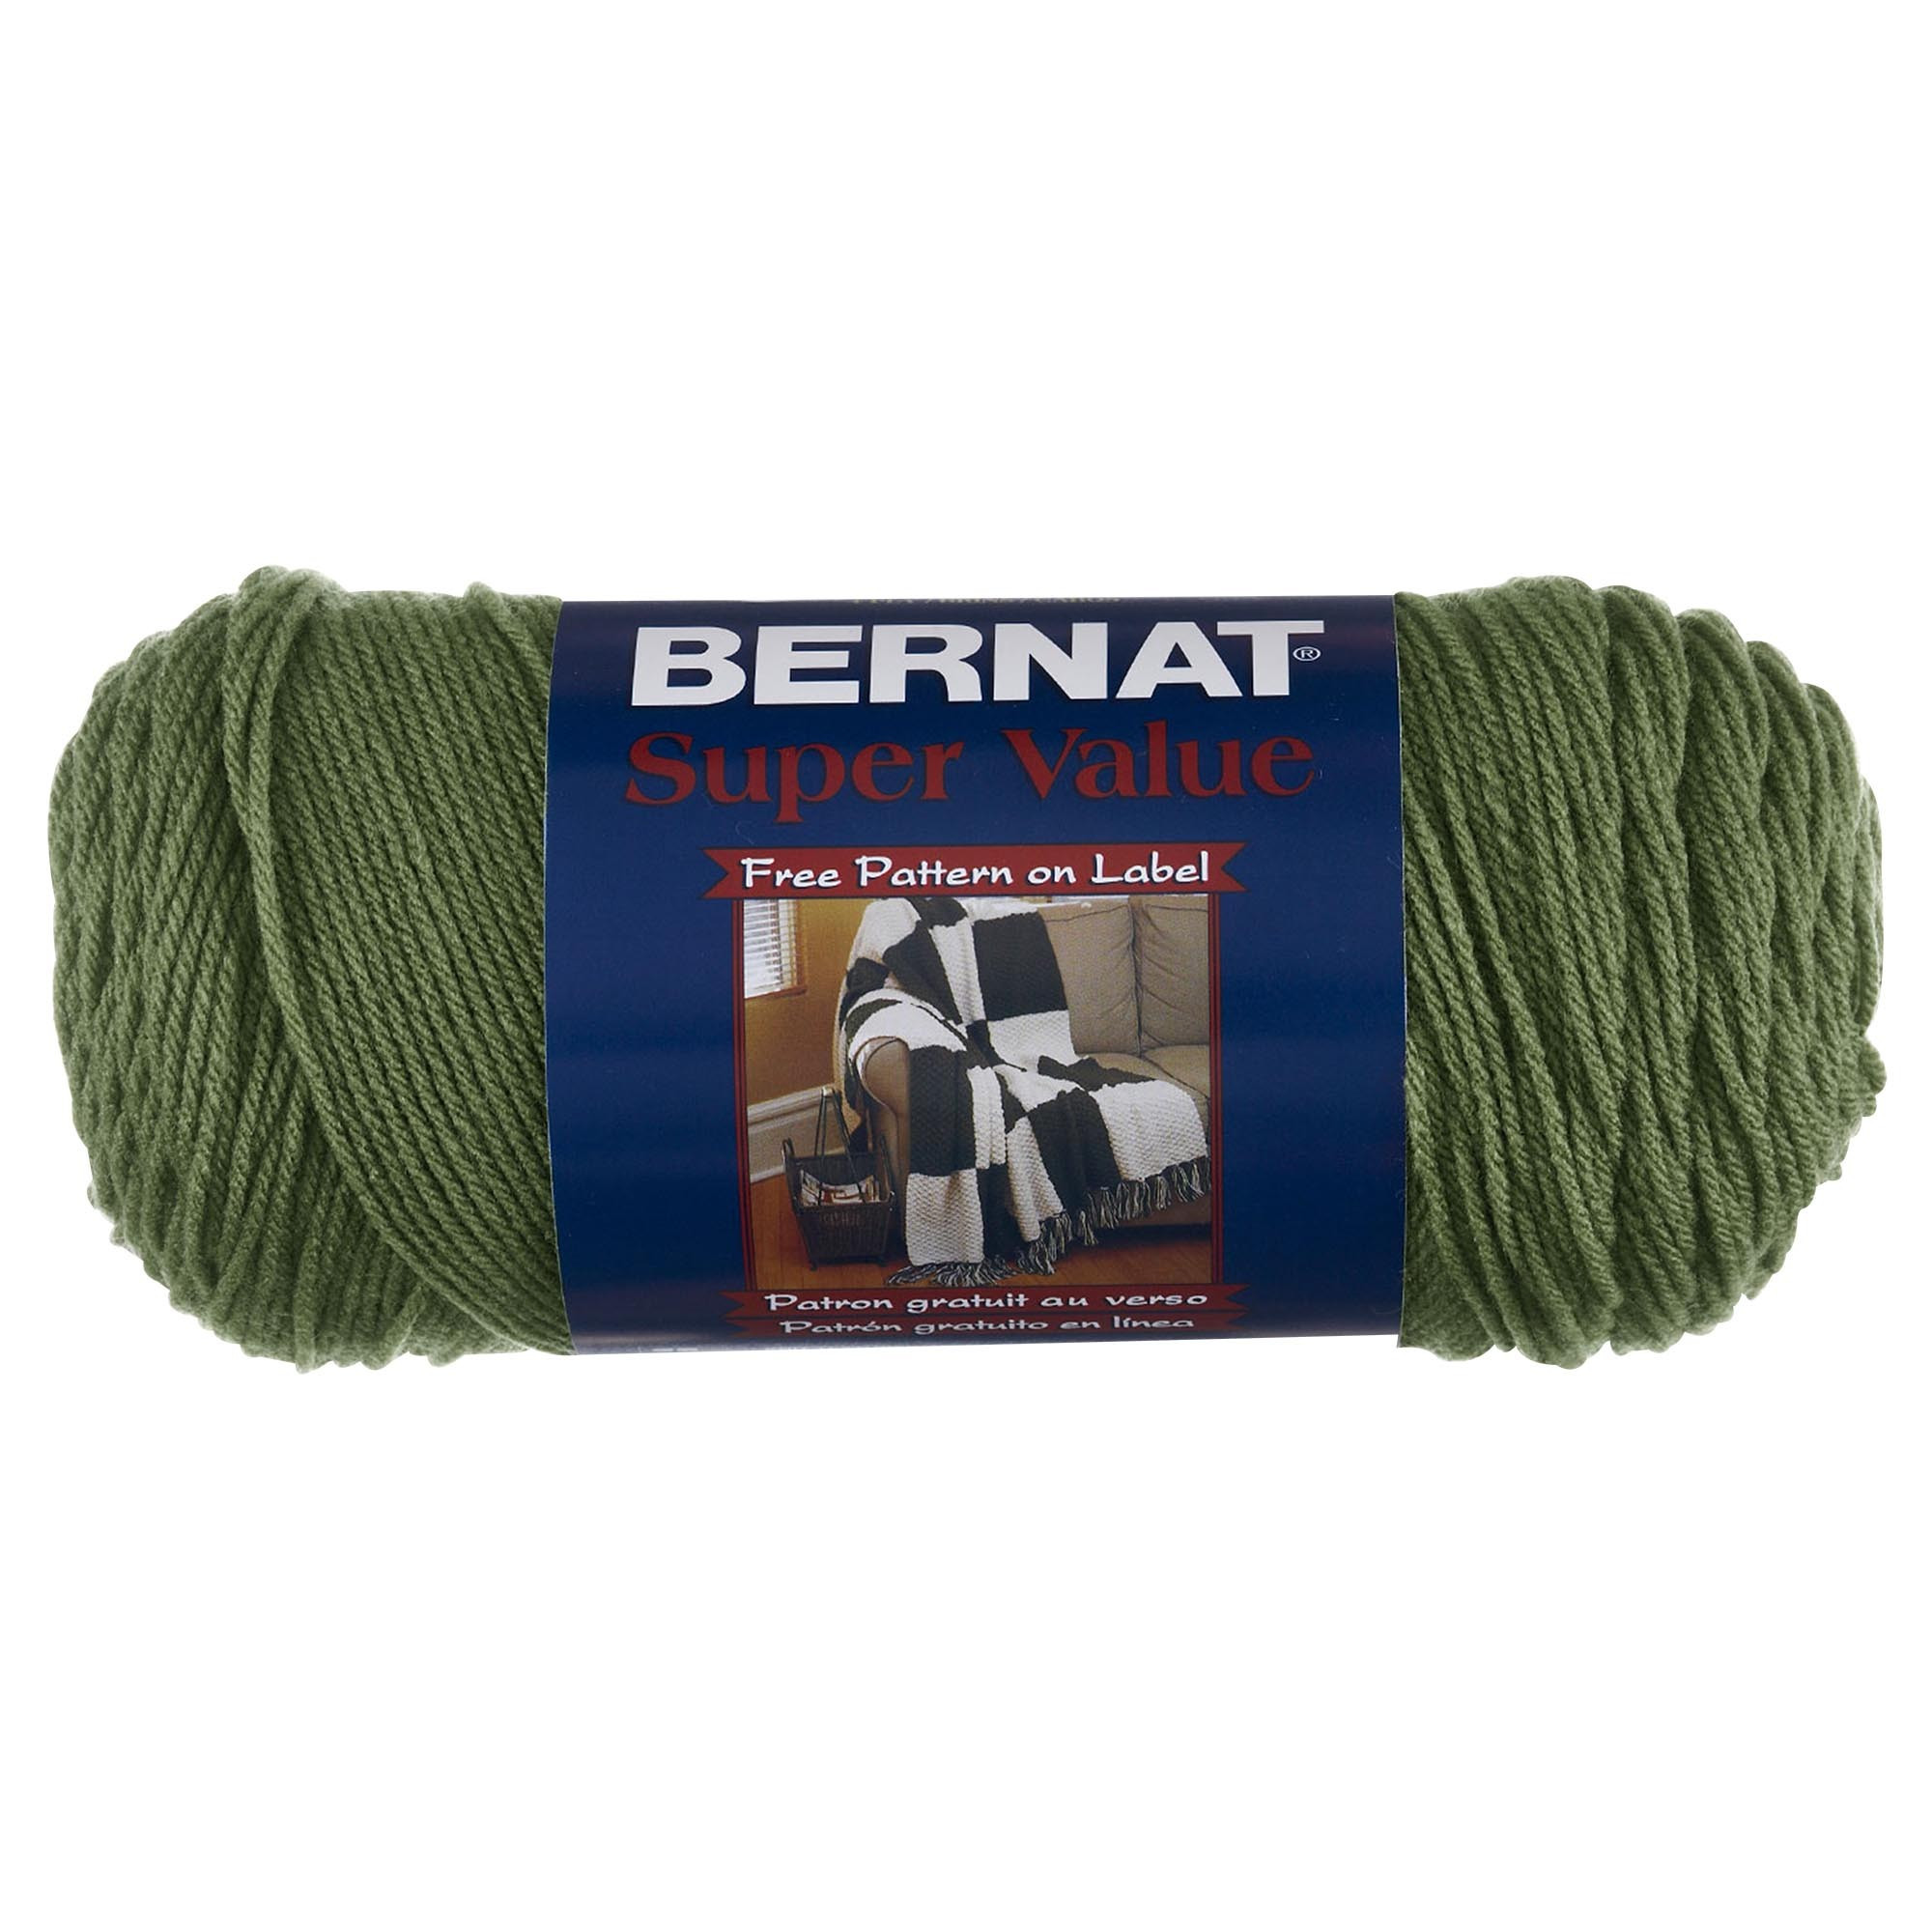 Bernat Super Value Knitting Yarn 197g 142g